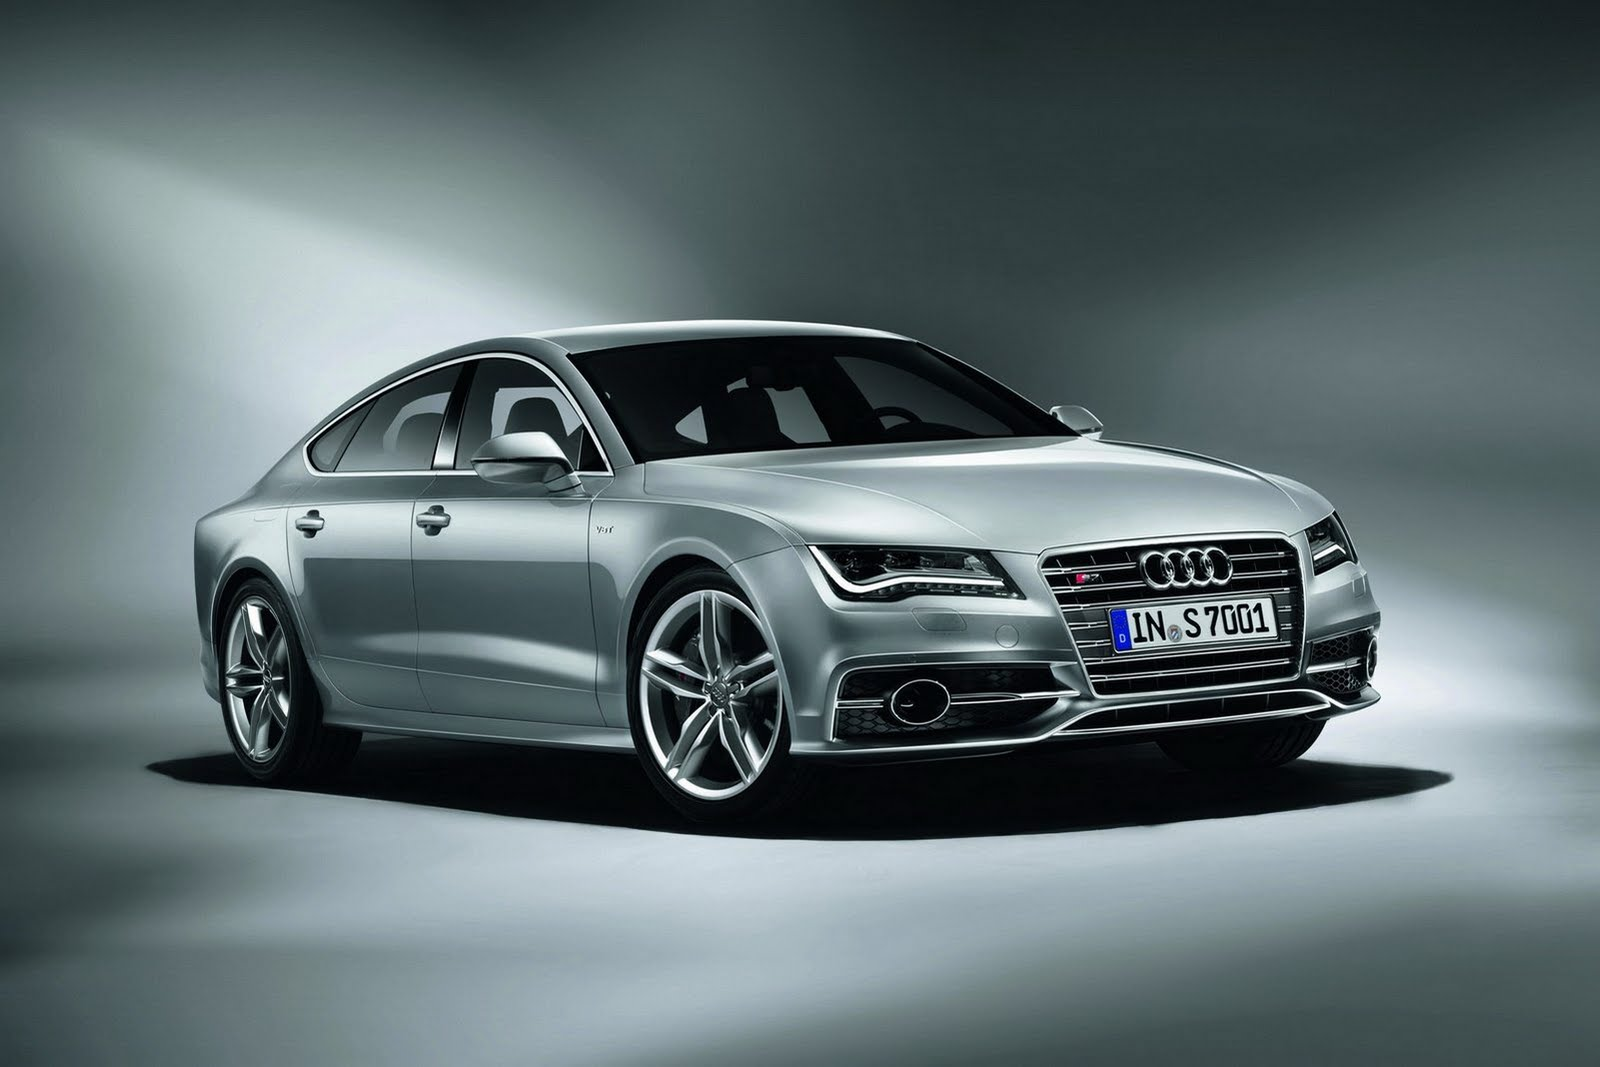 2012 audi s7 sportback top speed. Black Bedroom Furniture Sets. Home Design Ideas